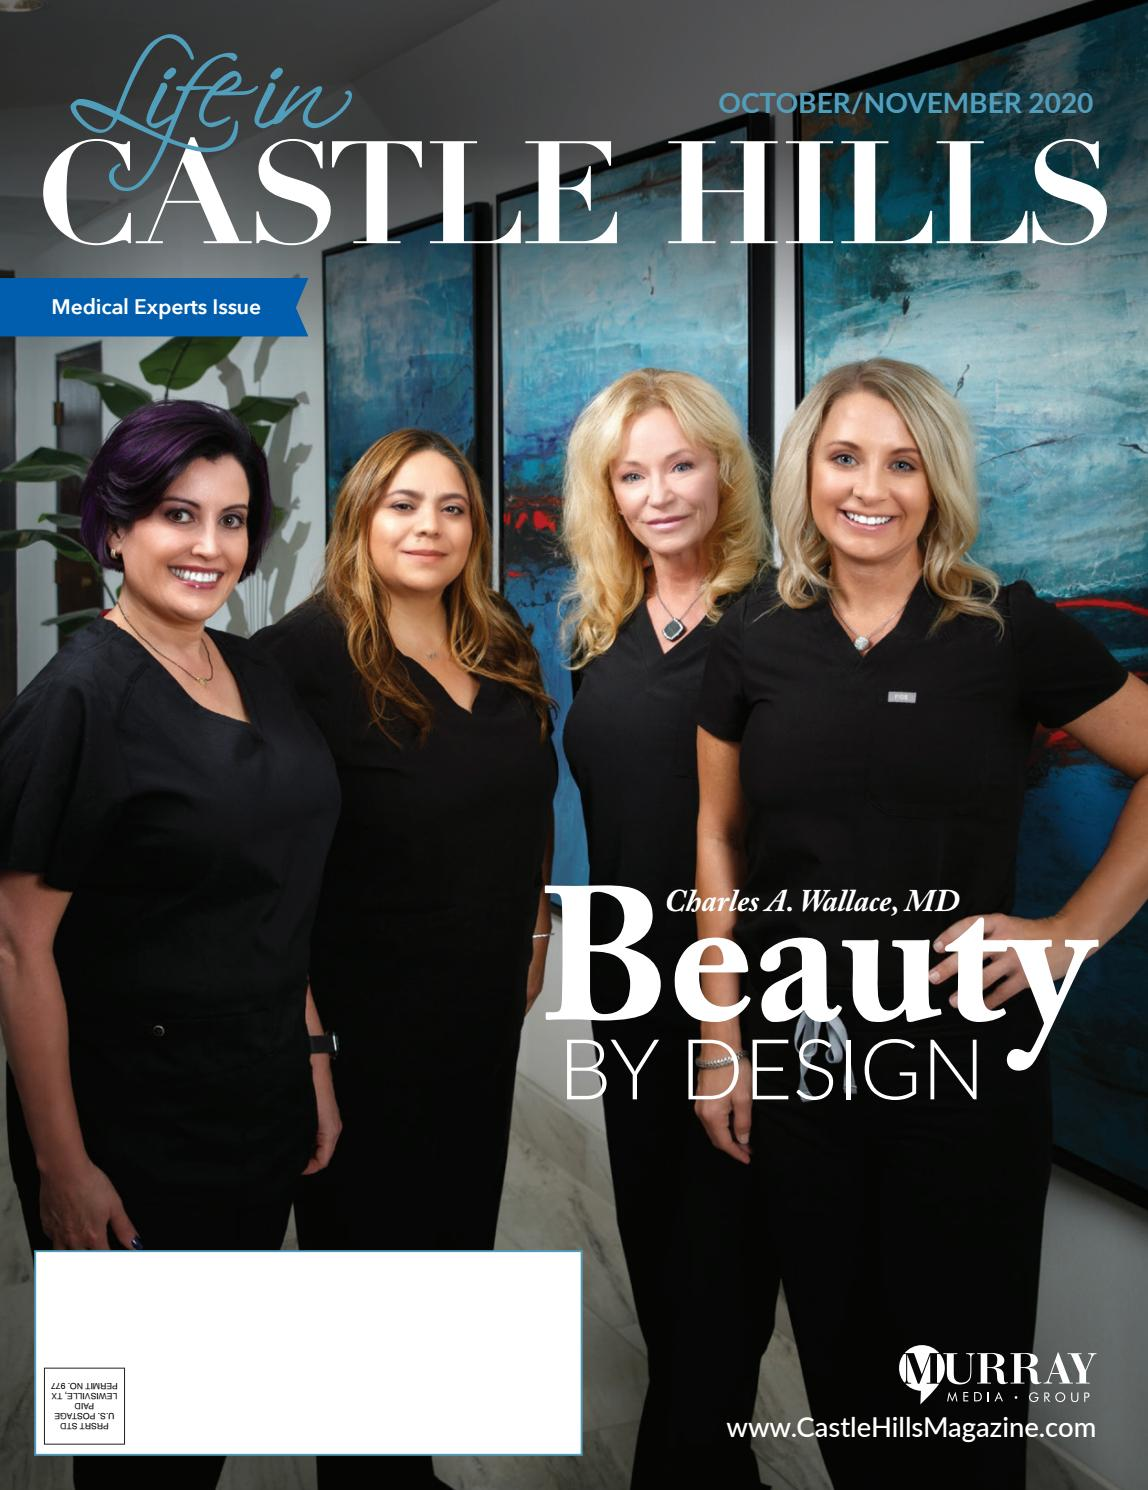 Life in Castle Hills Magazine October 2020 by Murray Media Group